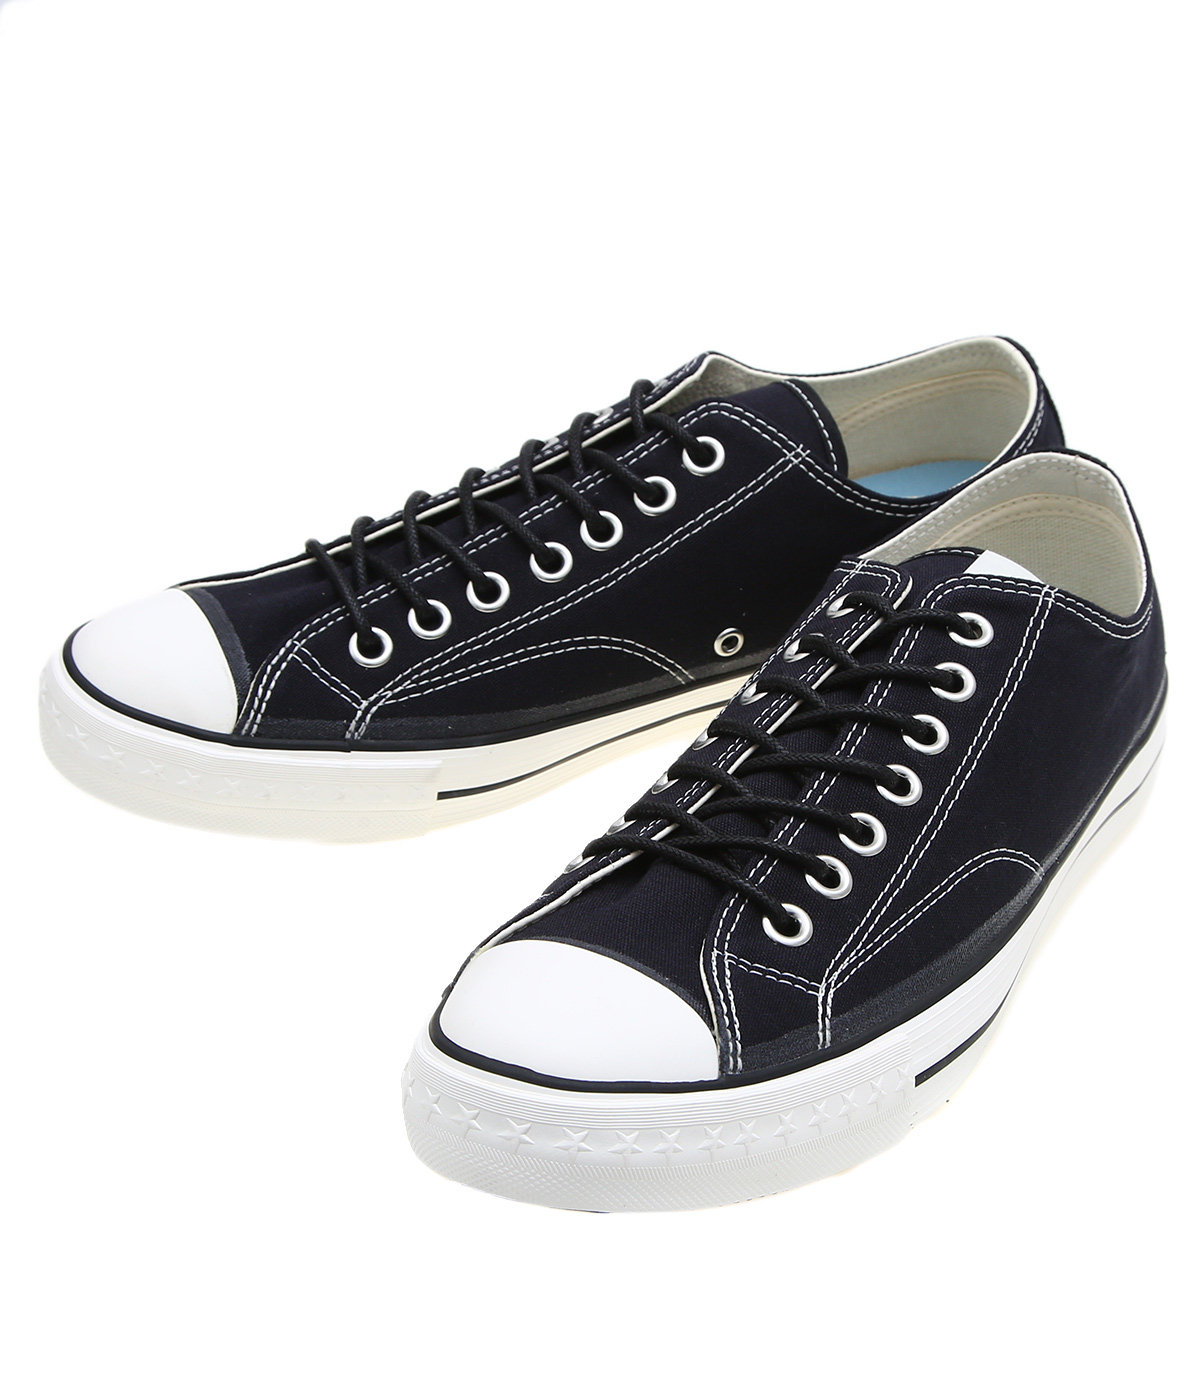 N.HOOLYWOOD×CONVERSE ADDICT COACH Low